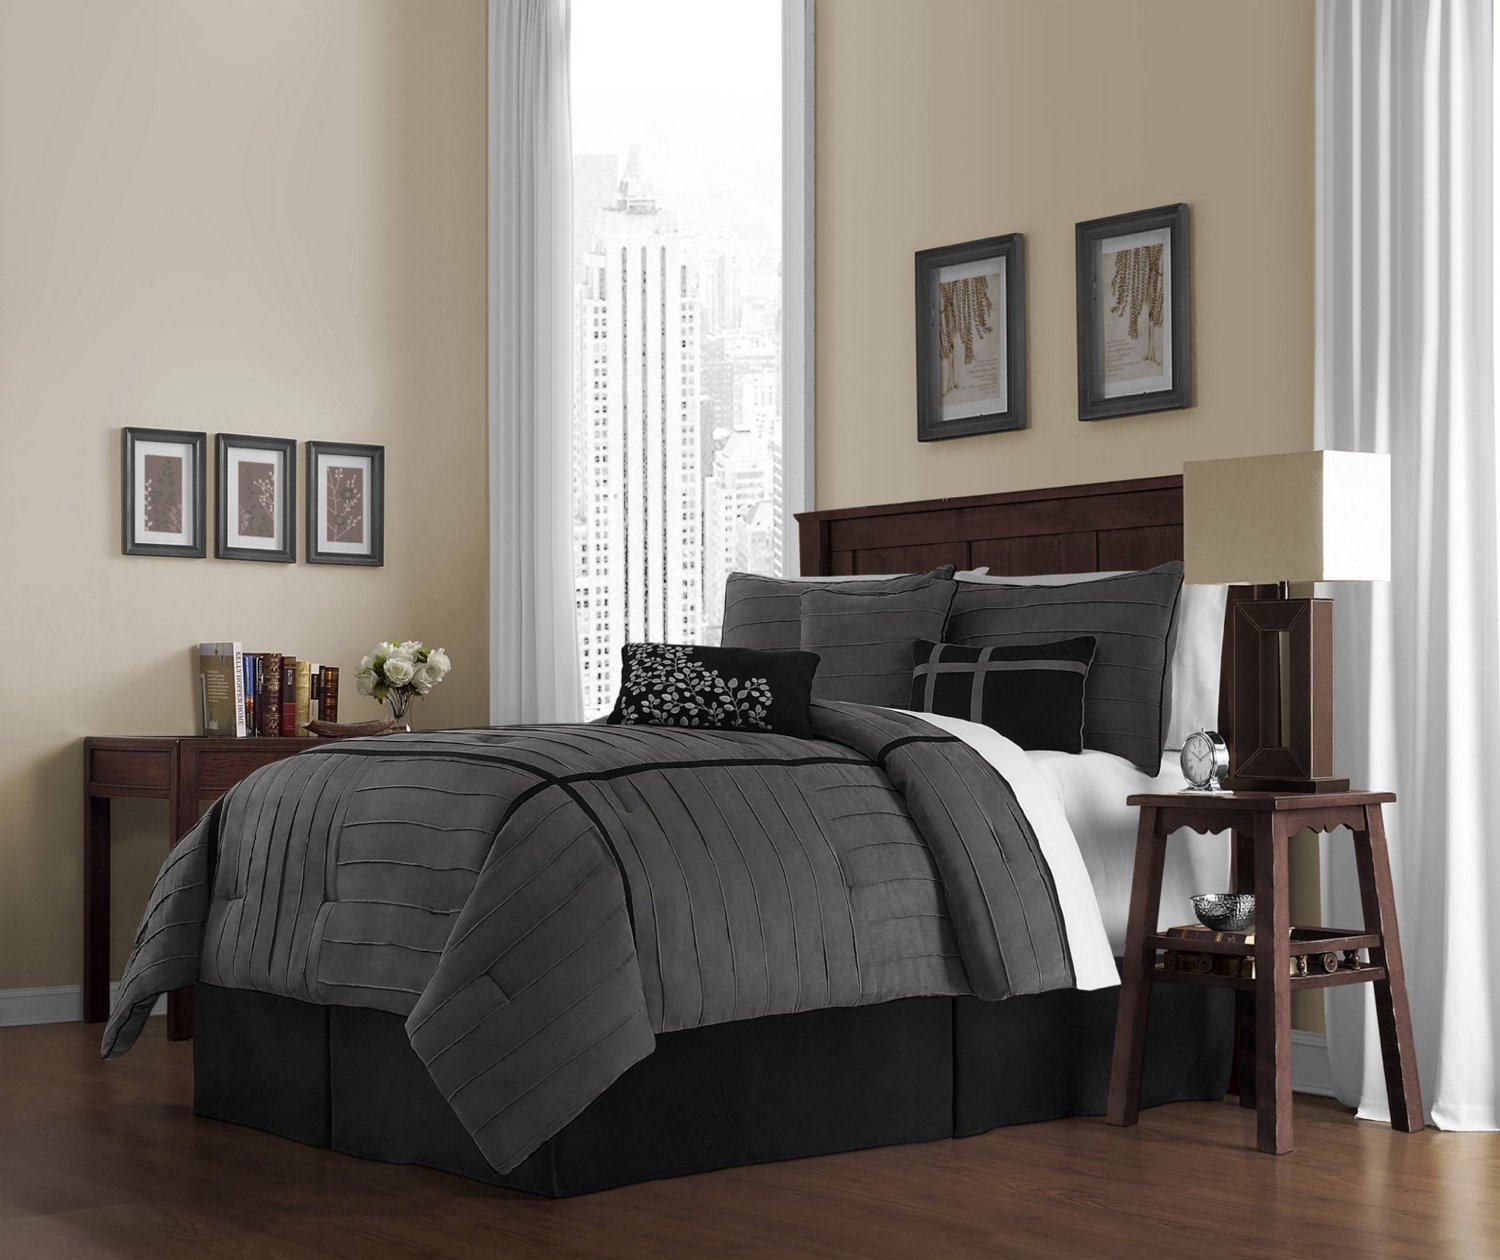 Black and grey bedding - Charcoal Grey Comforter Bedding Sets